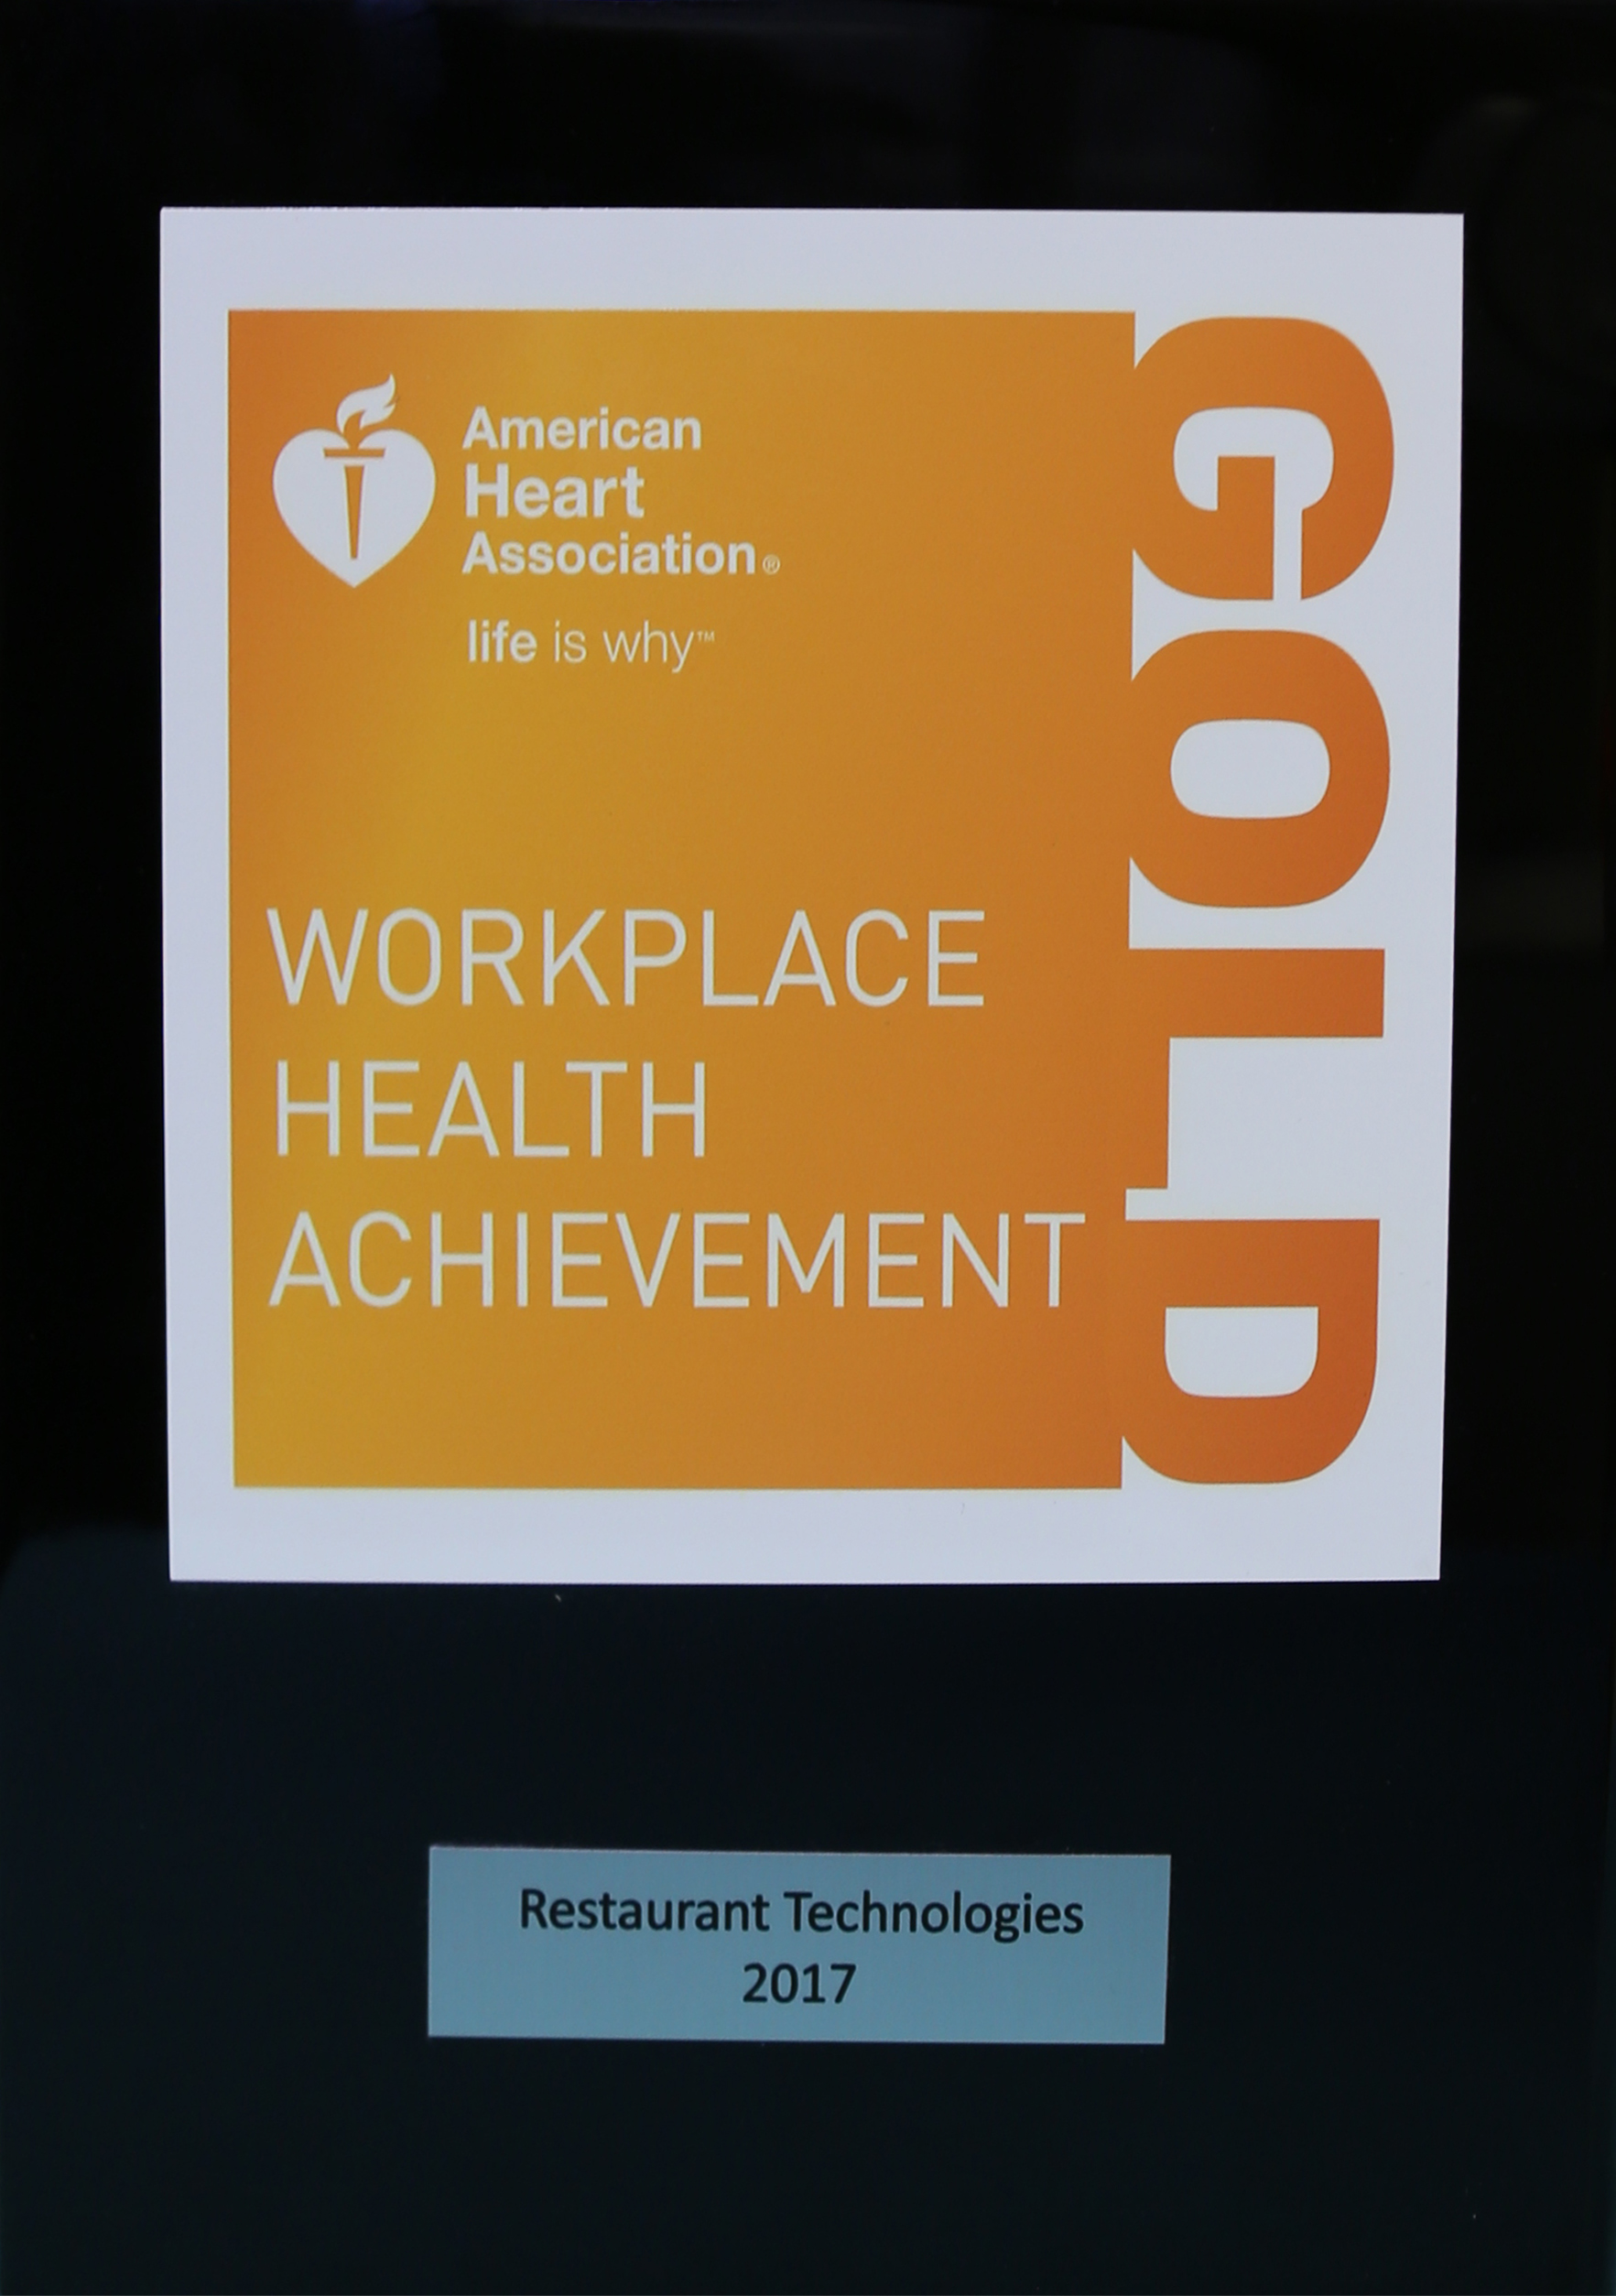 Workplace Health Achievement Award